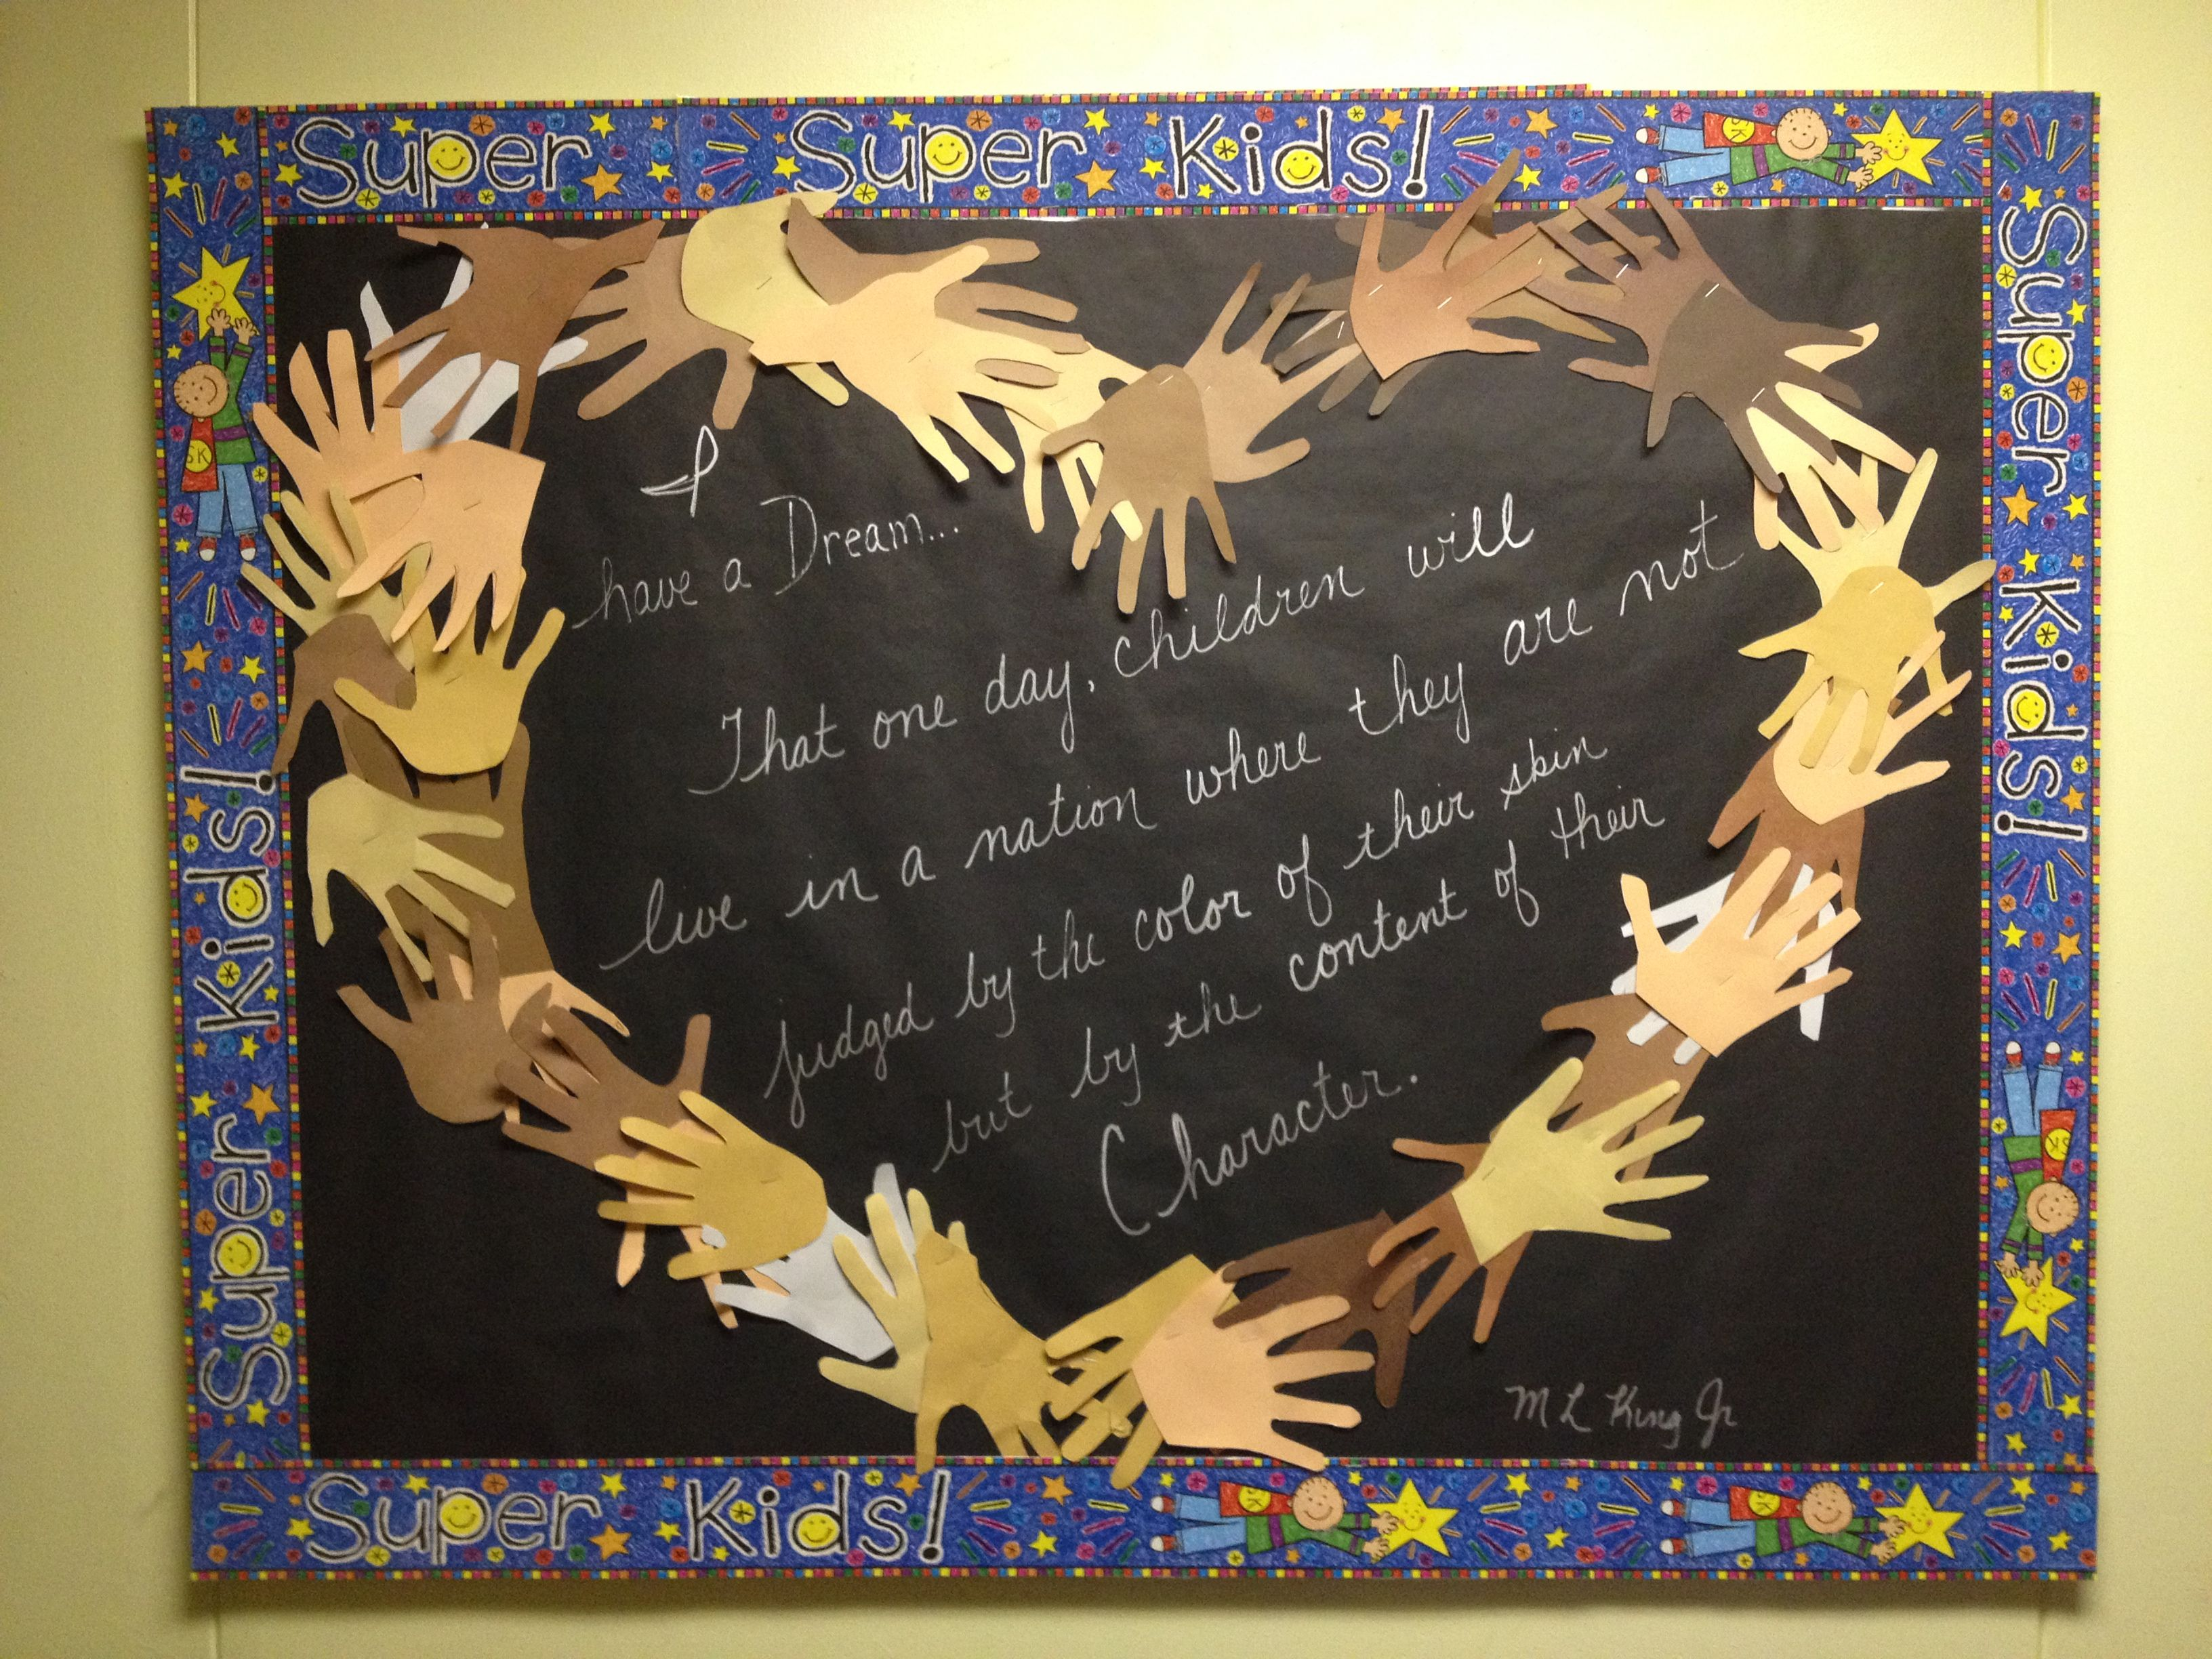 Mlk Bulletin Board